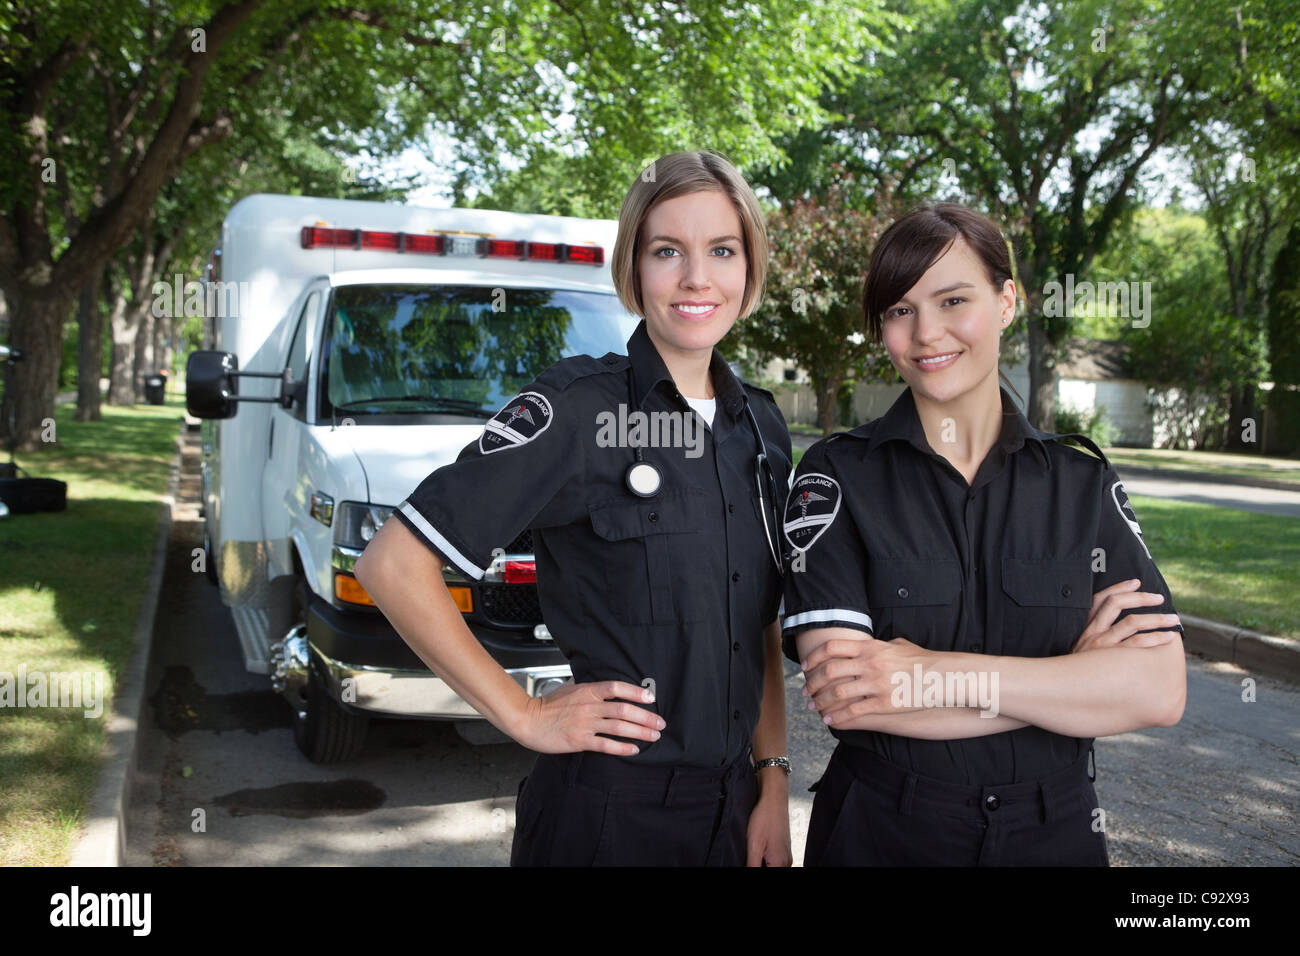 Female paramedica team portrat in front of ambulance - Stock Image